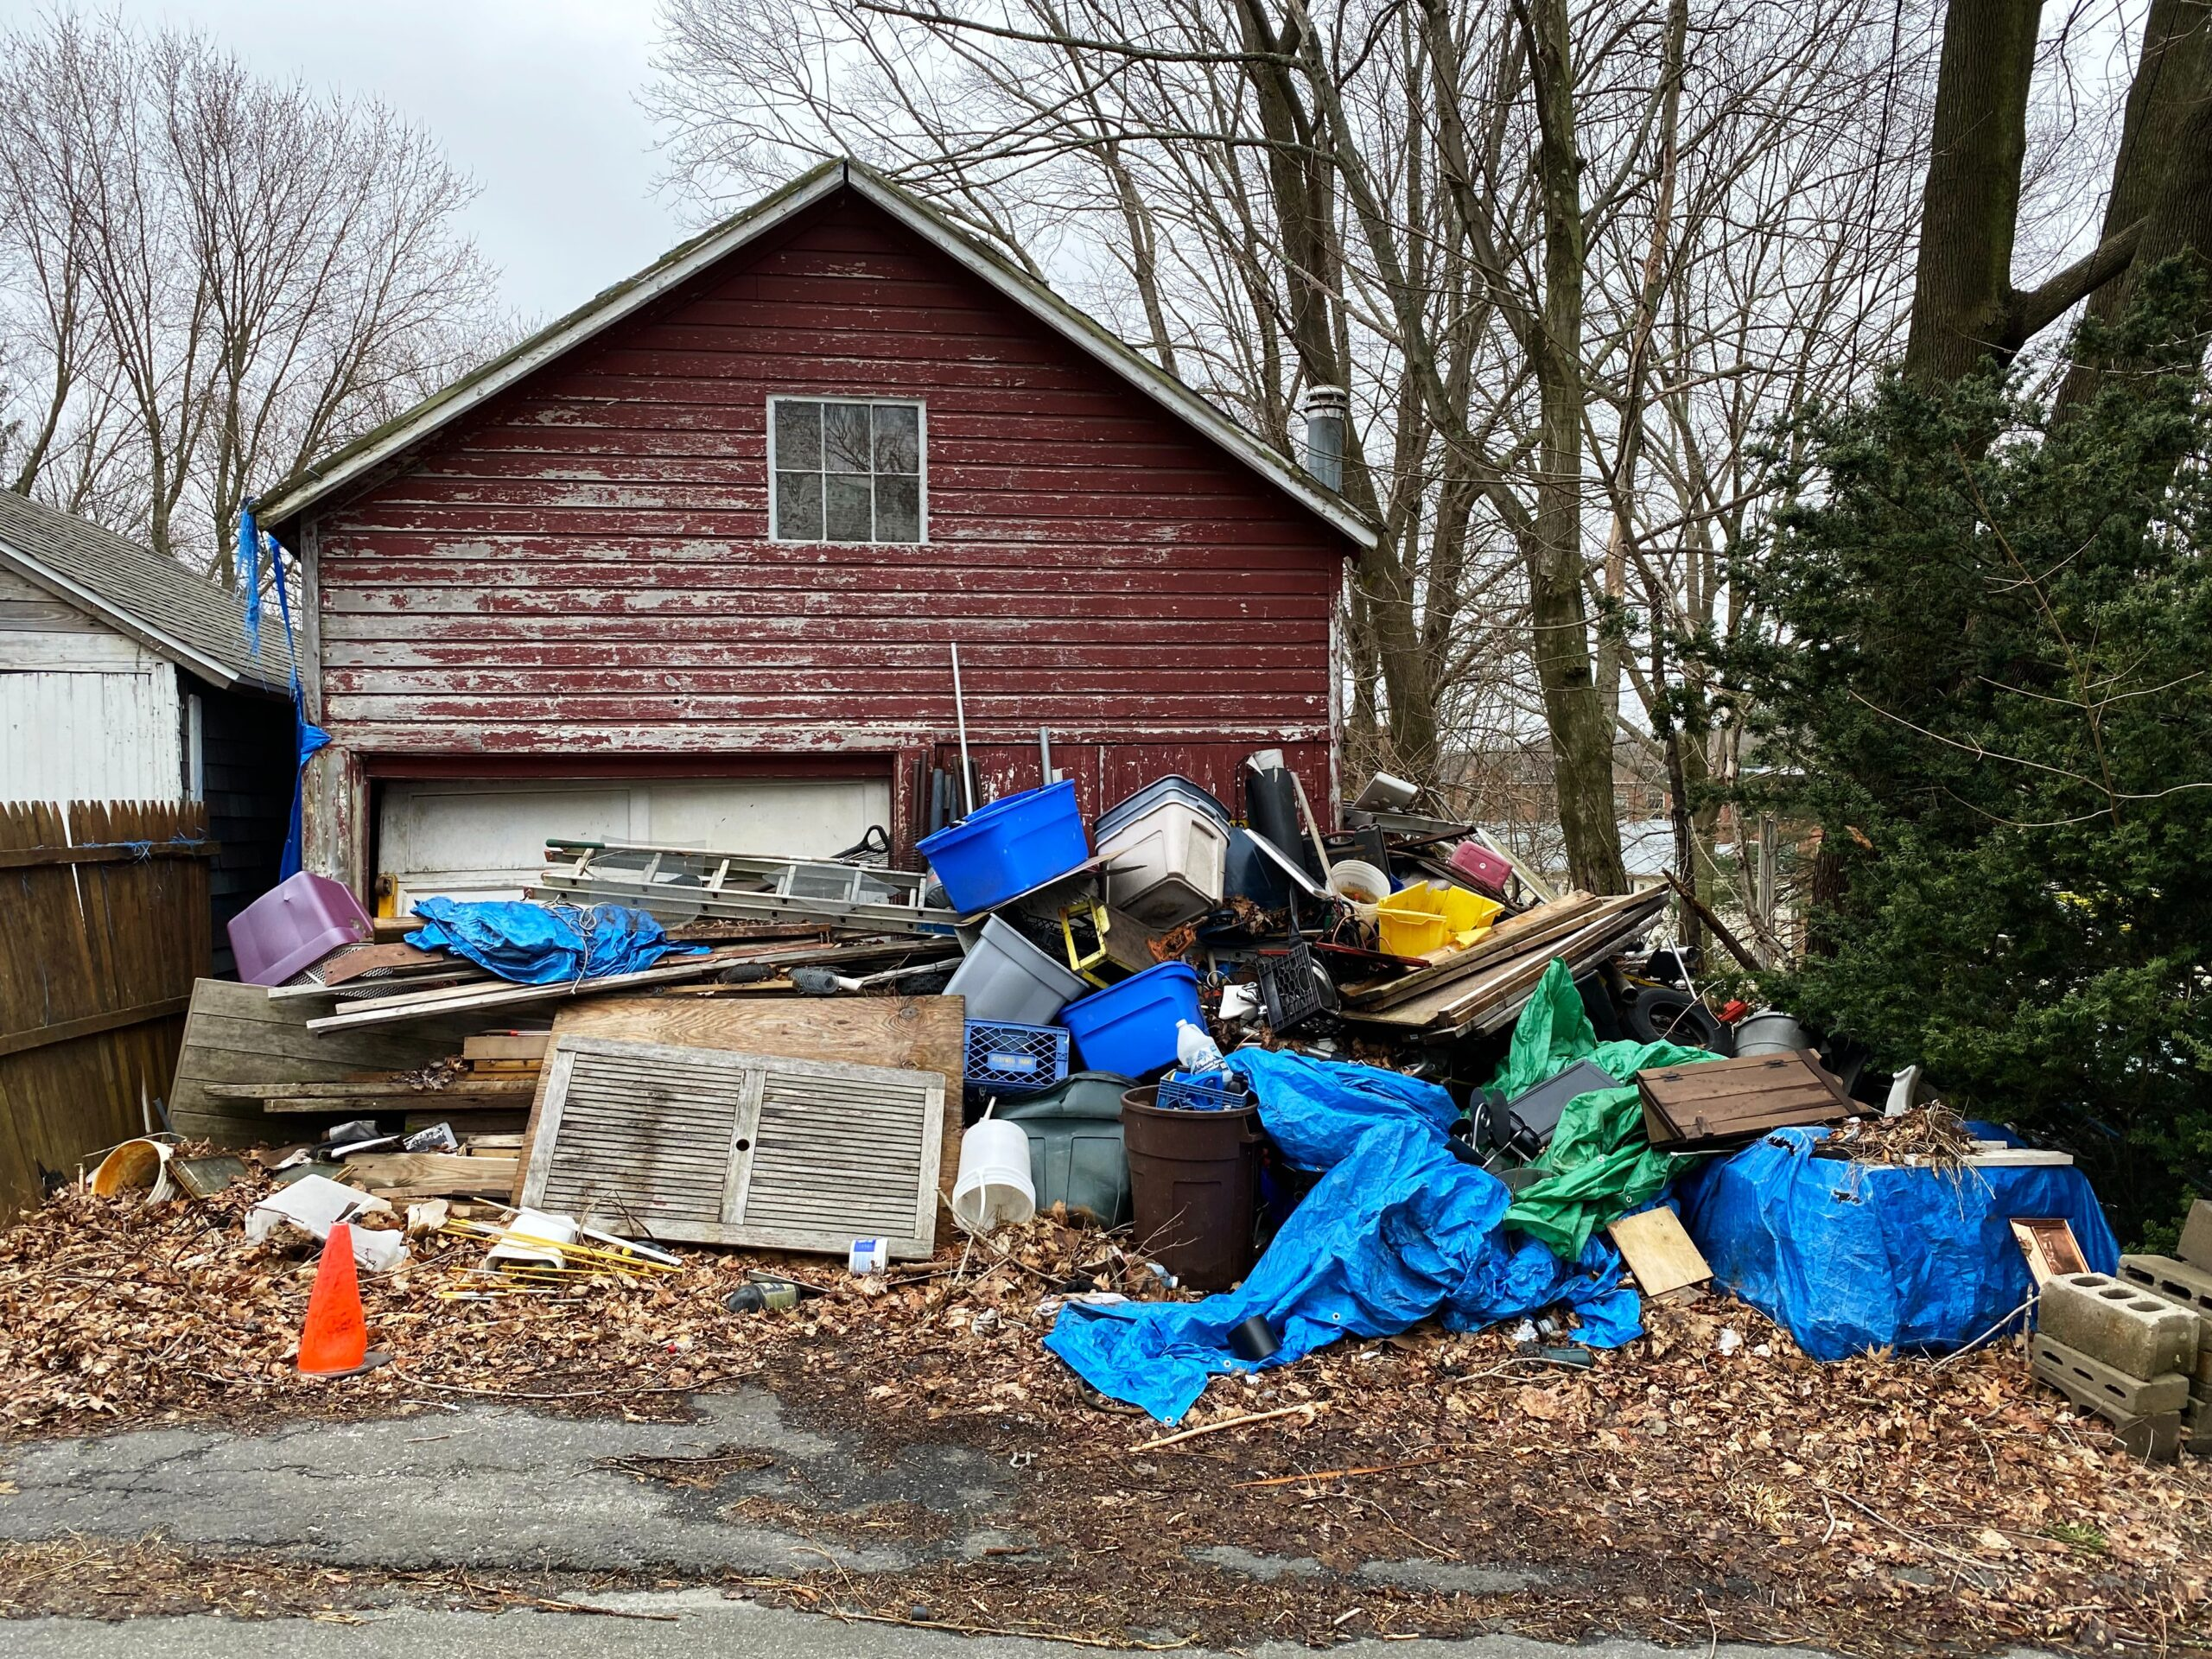 decluttering in a hoarding situation will take time and be messy during the process